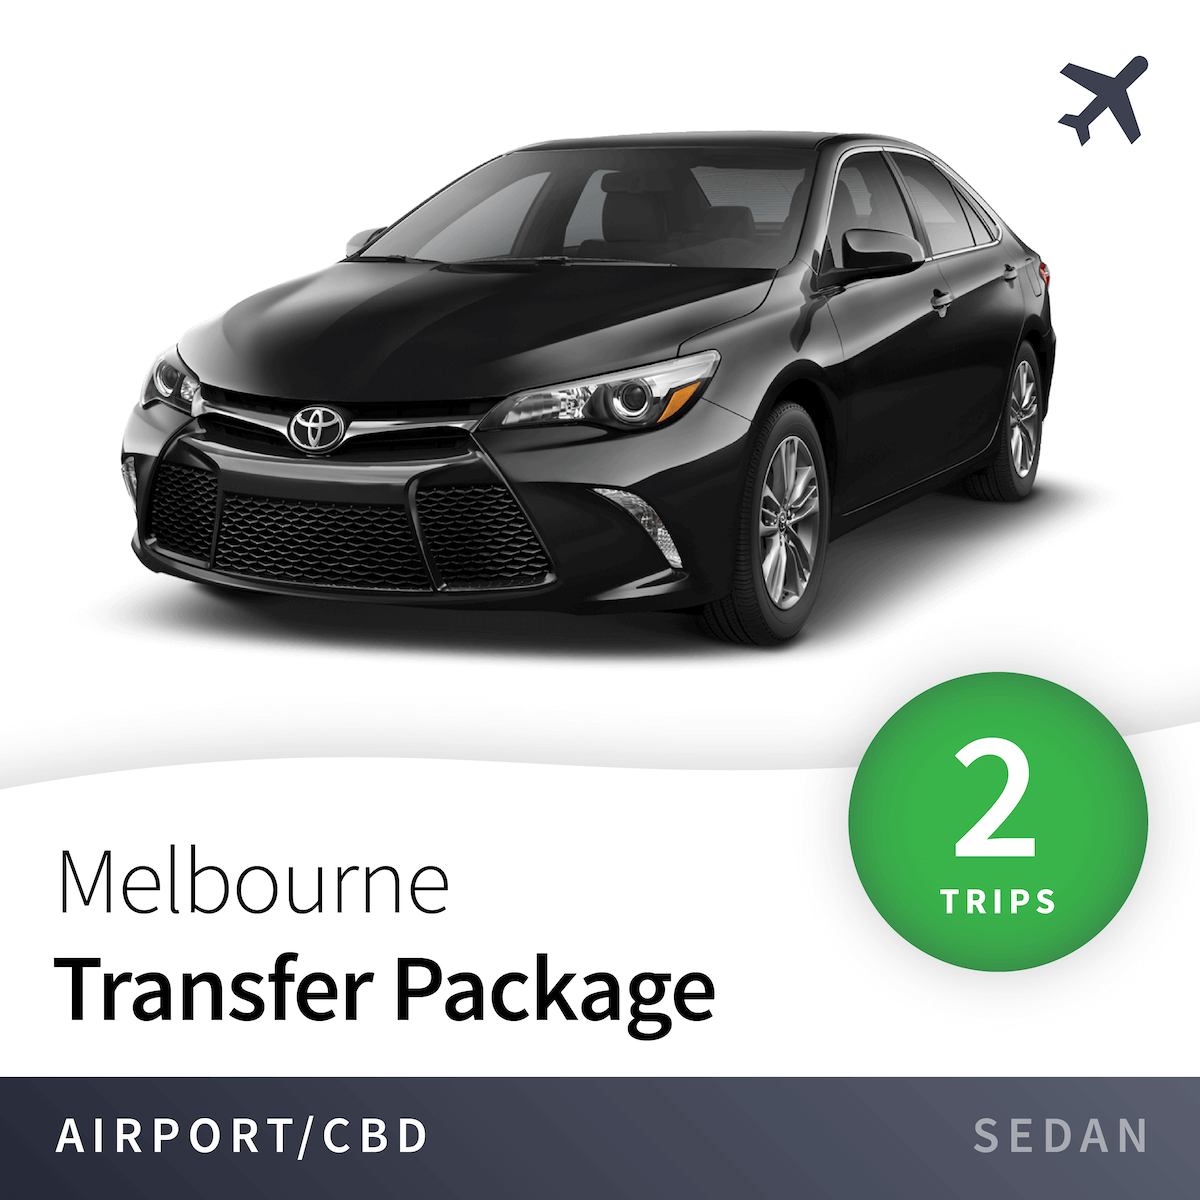 Melbourne Airport Transfer Package - Sedan (2 Trips) 2